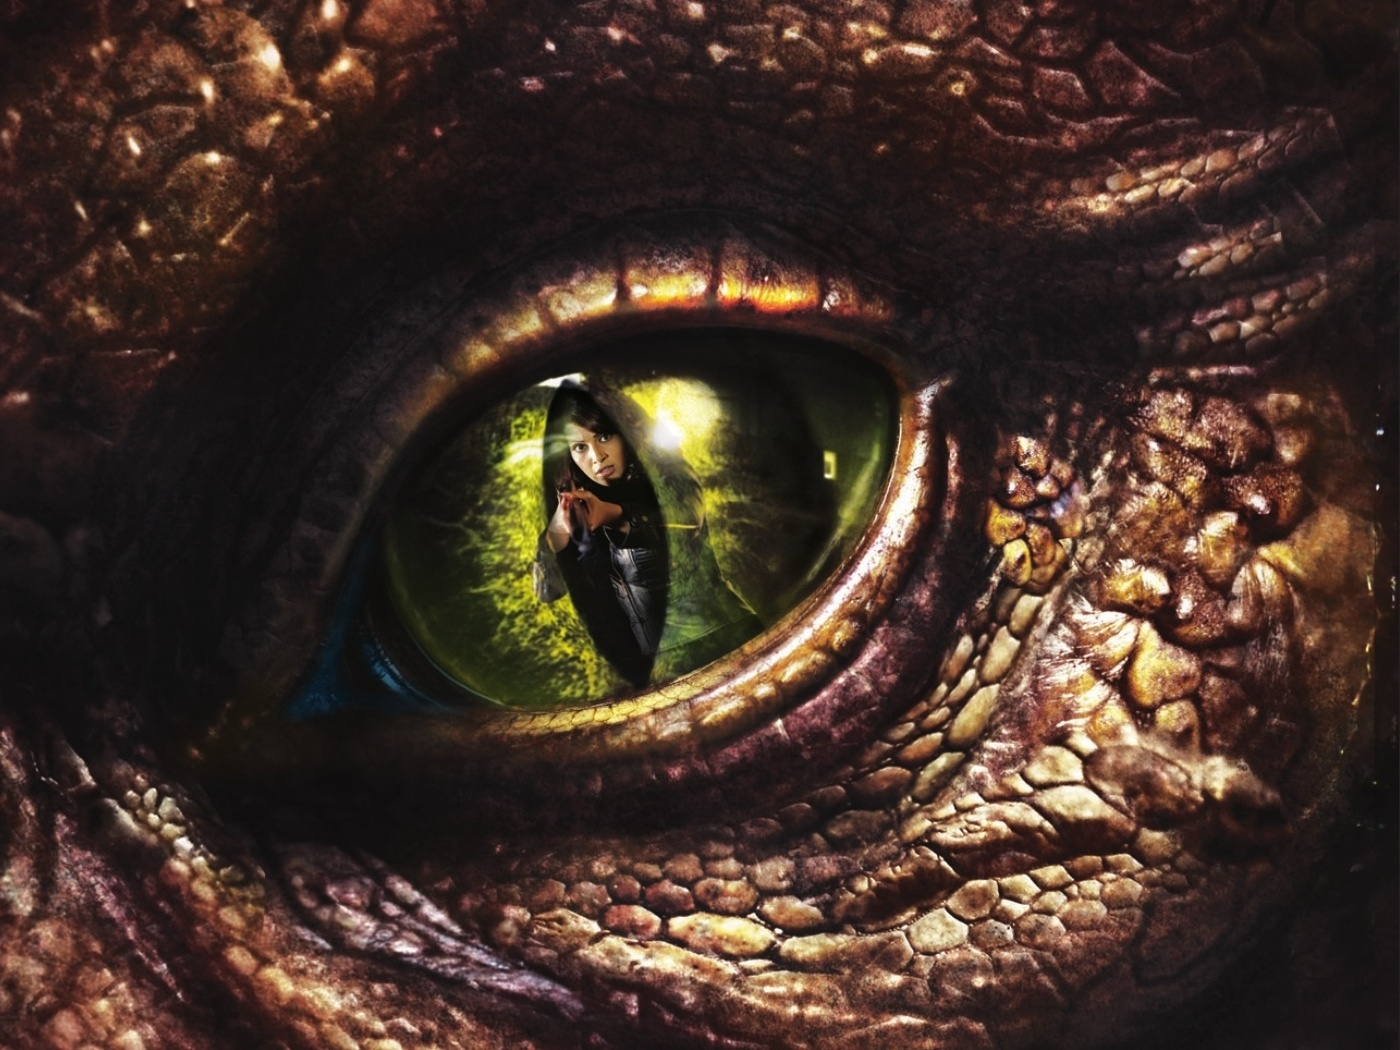 Free 3d creature movies porn picture